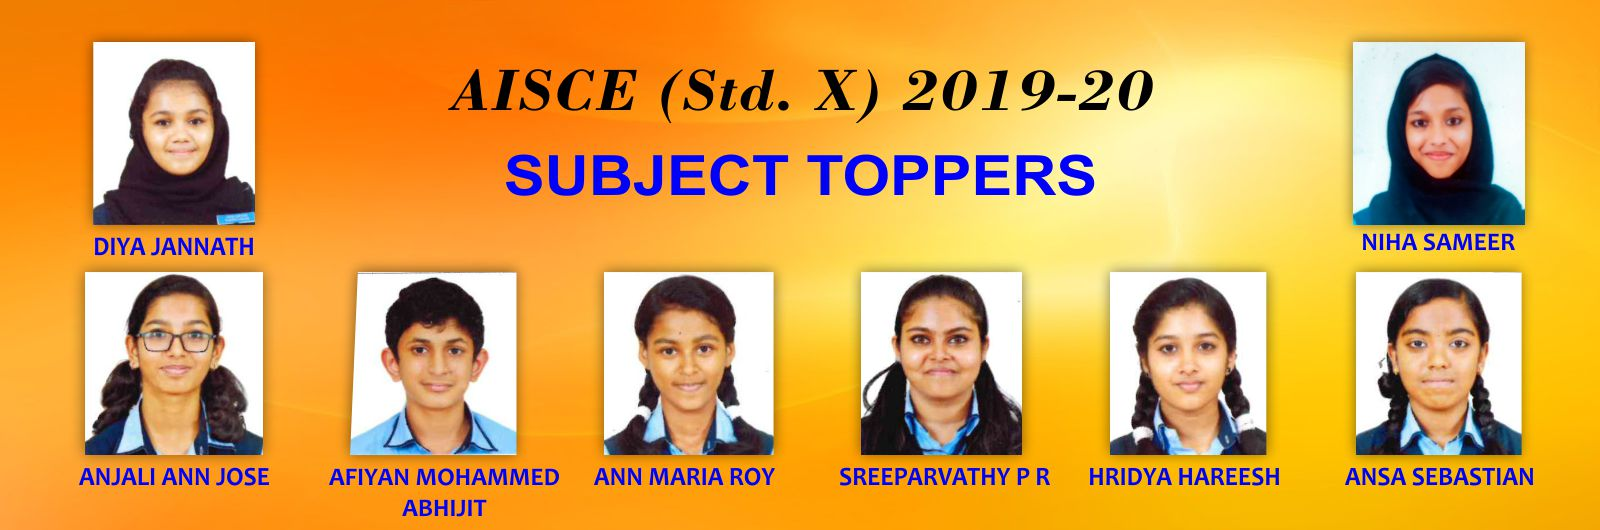 slide 5 subject toppers in std X